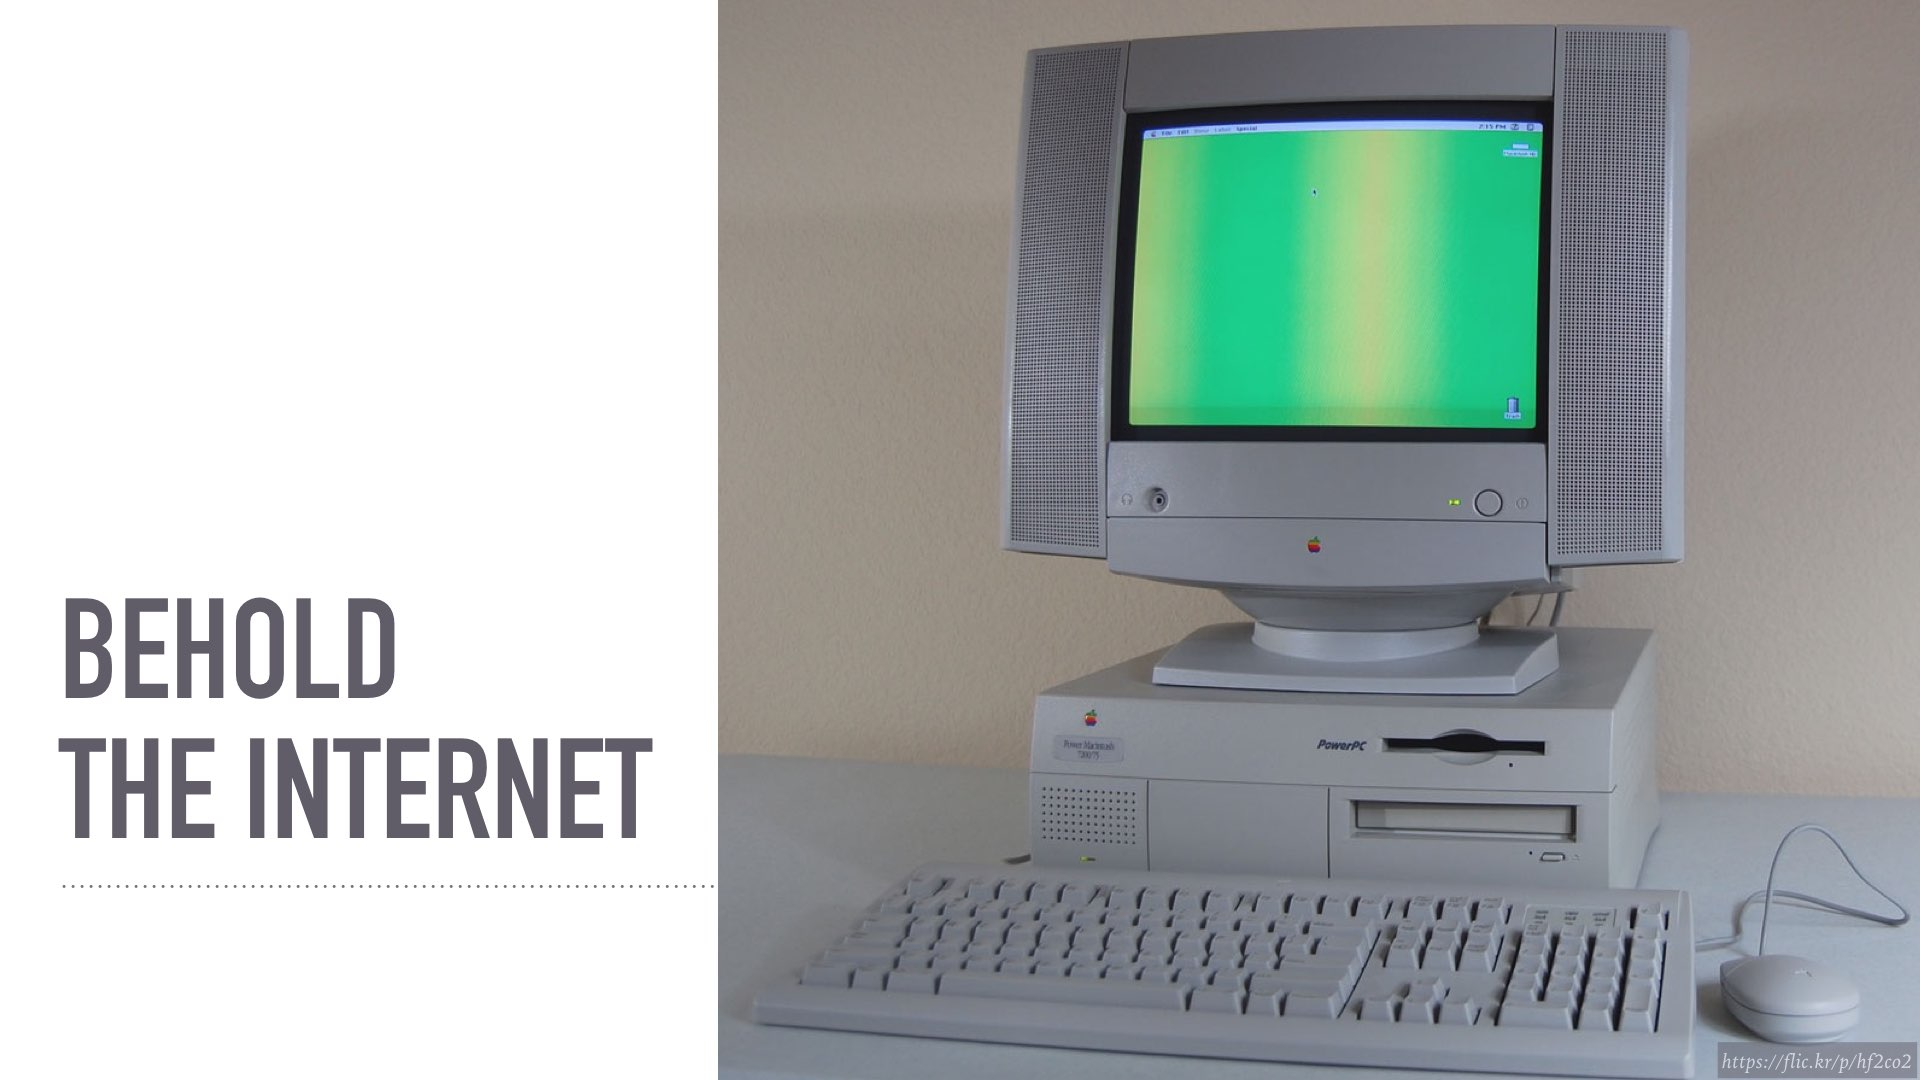 Behold the internet: a computer